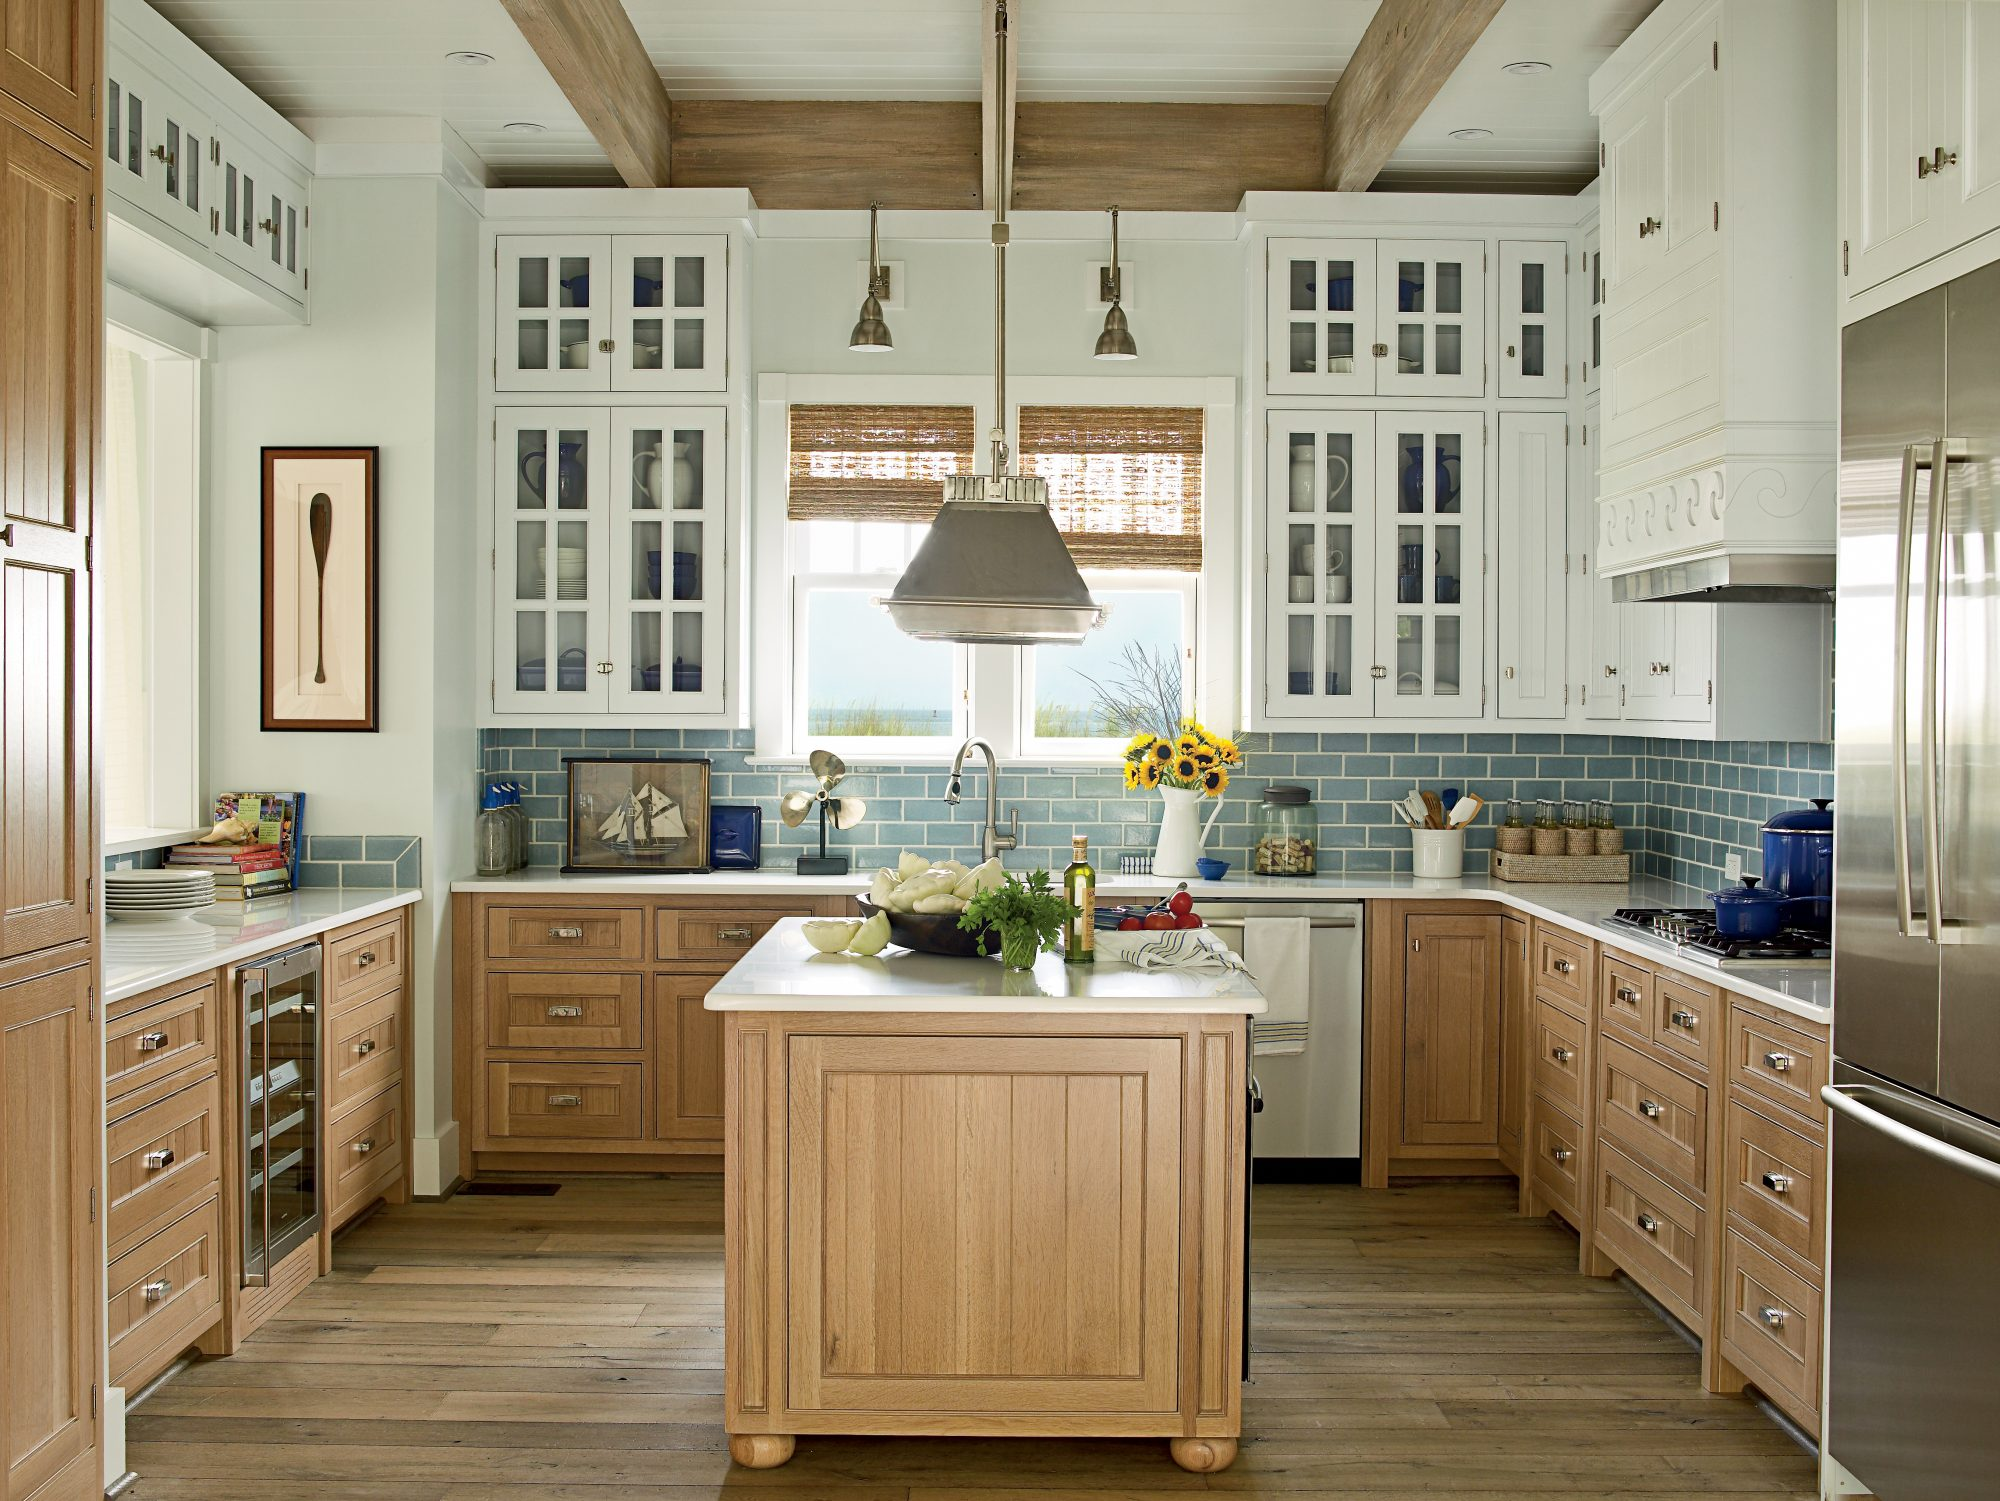 White paint and glass doors on the upper cabinets brighten the kitchen in our 2011 Showhouse kitchen in Norfolk, Virginia, while the polyurethane finish on the cabinets below stands up to wear and tear without chipping. The deep blue recycled ceramic-tile